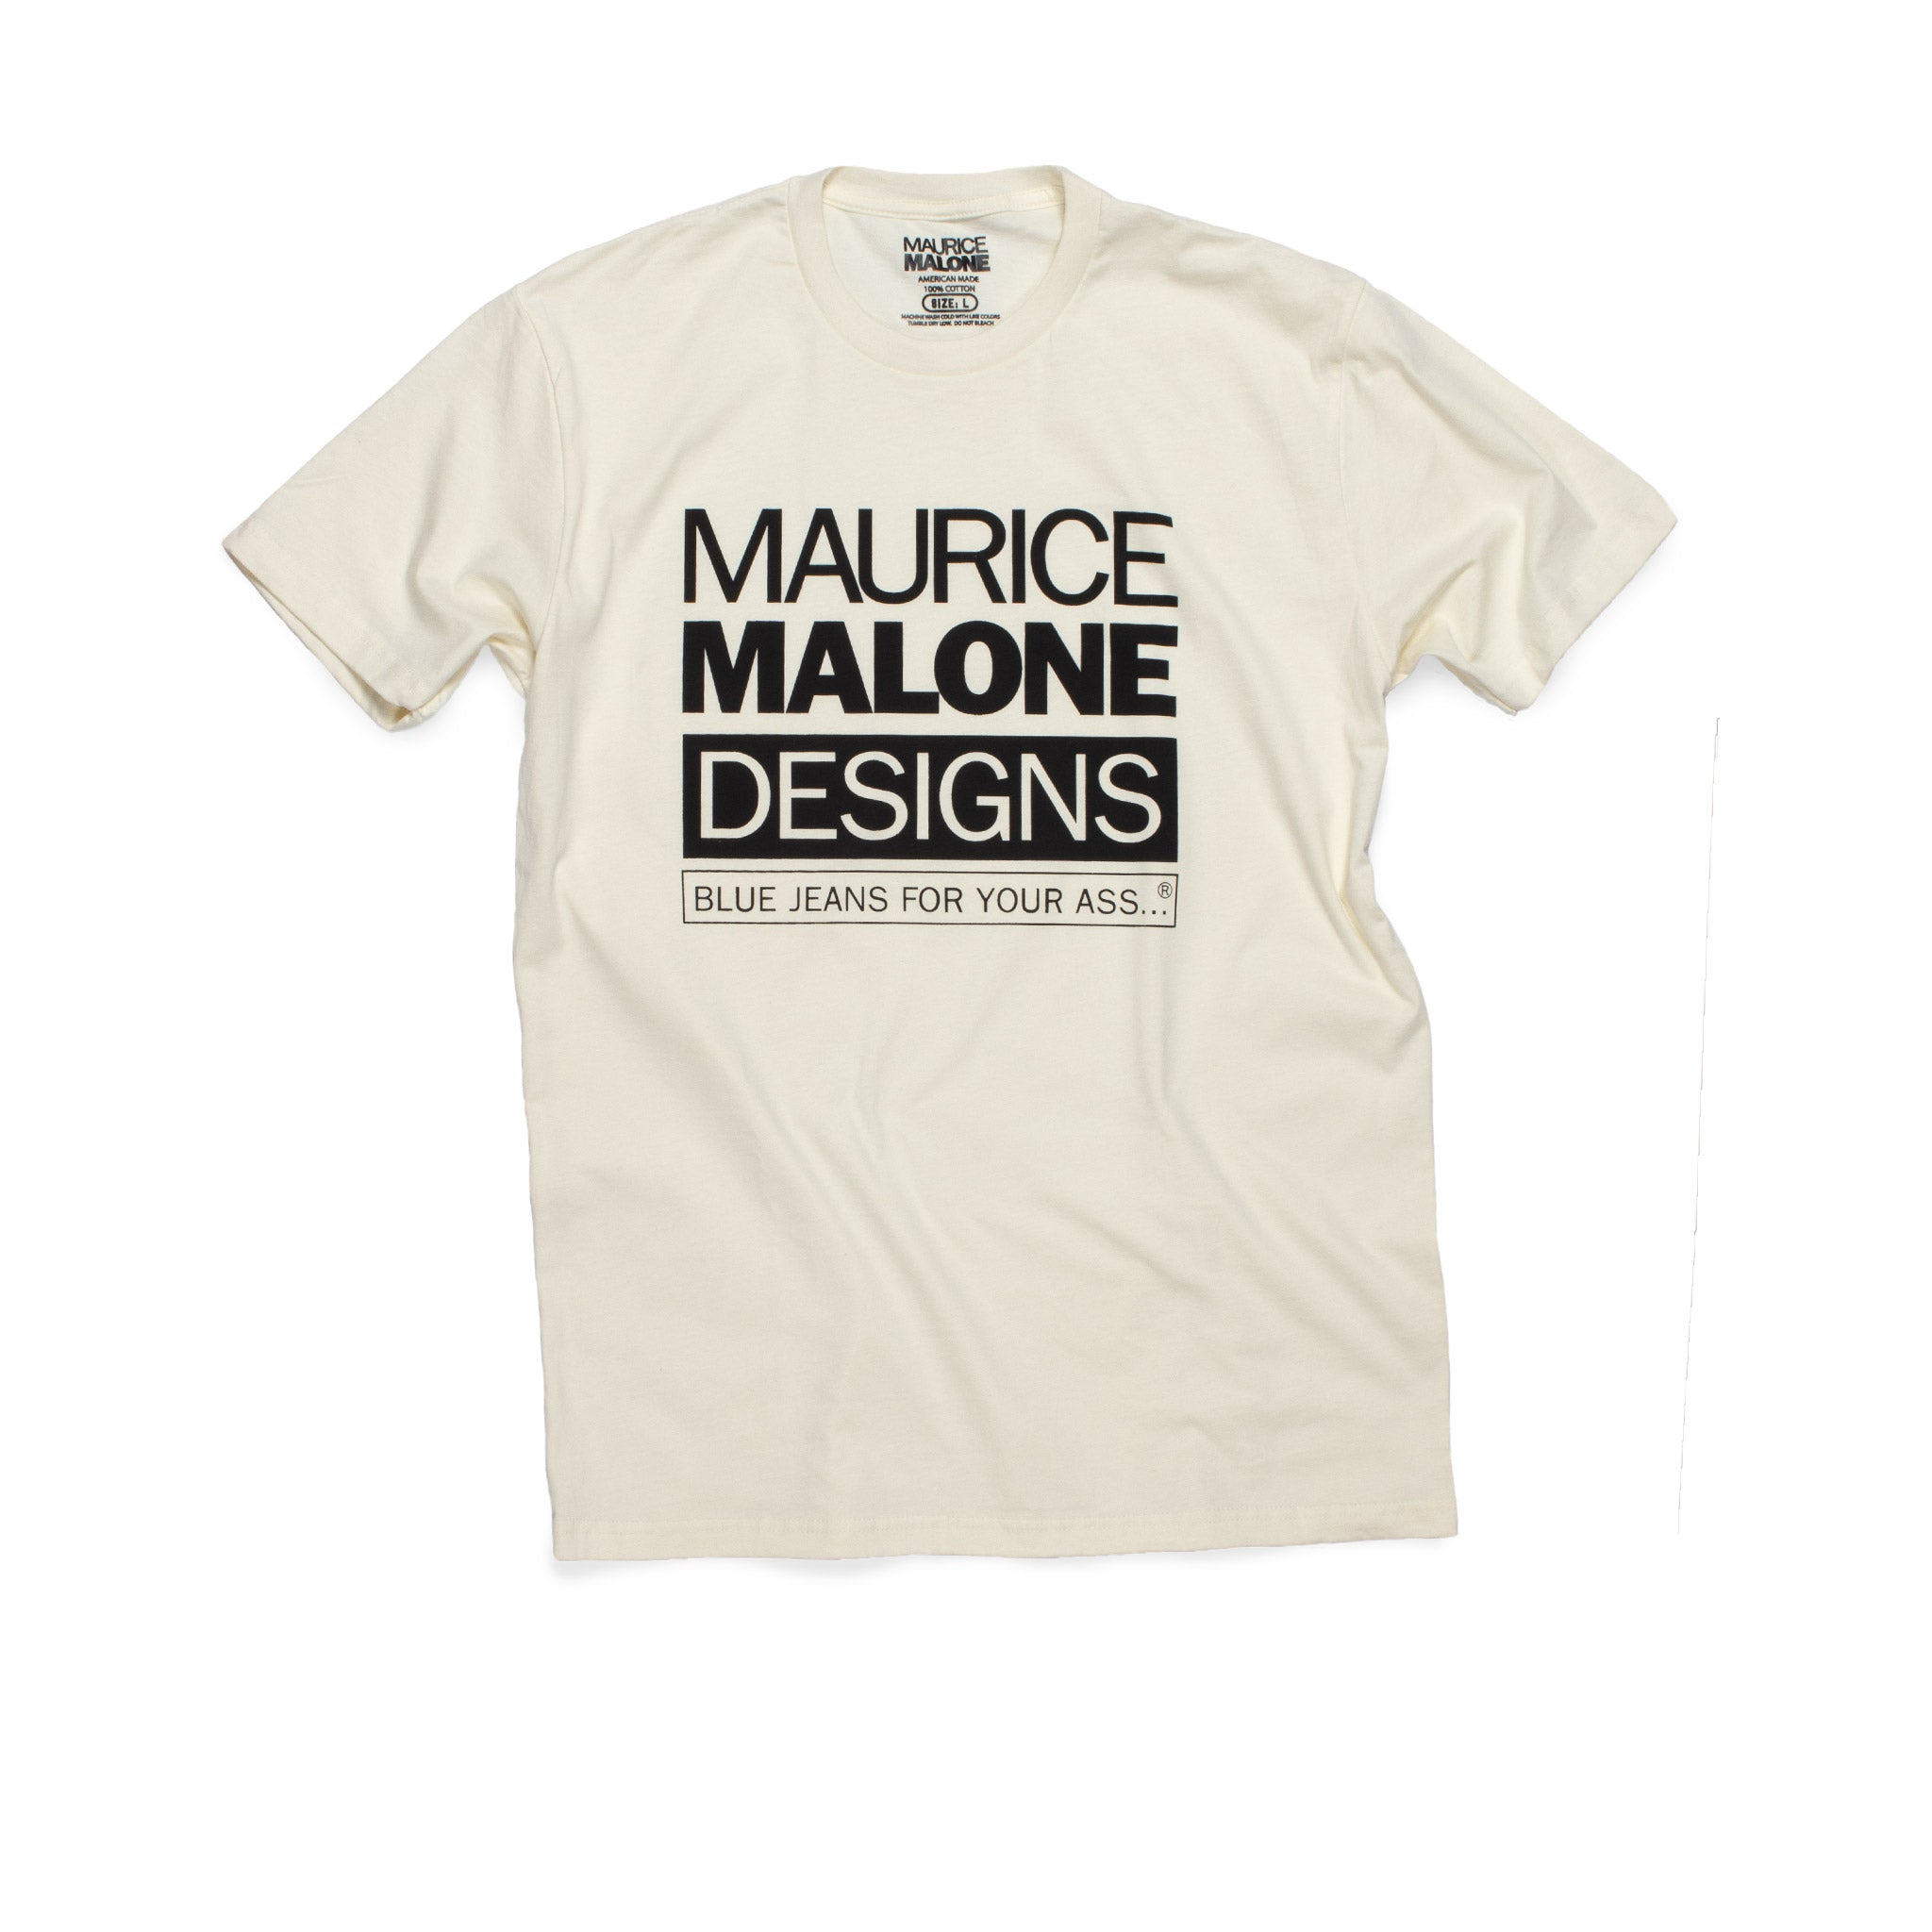 Natural Maurice Malone 1990's hip hop fashion t-shirt blue jeans for your ass